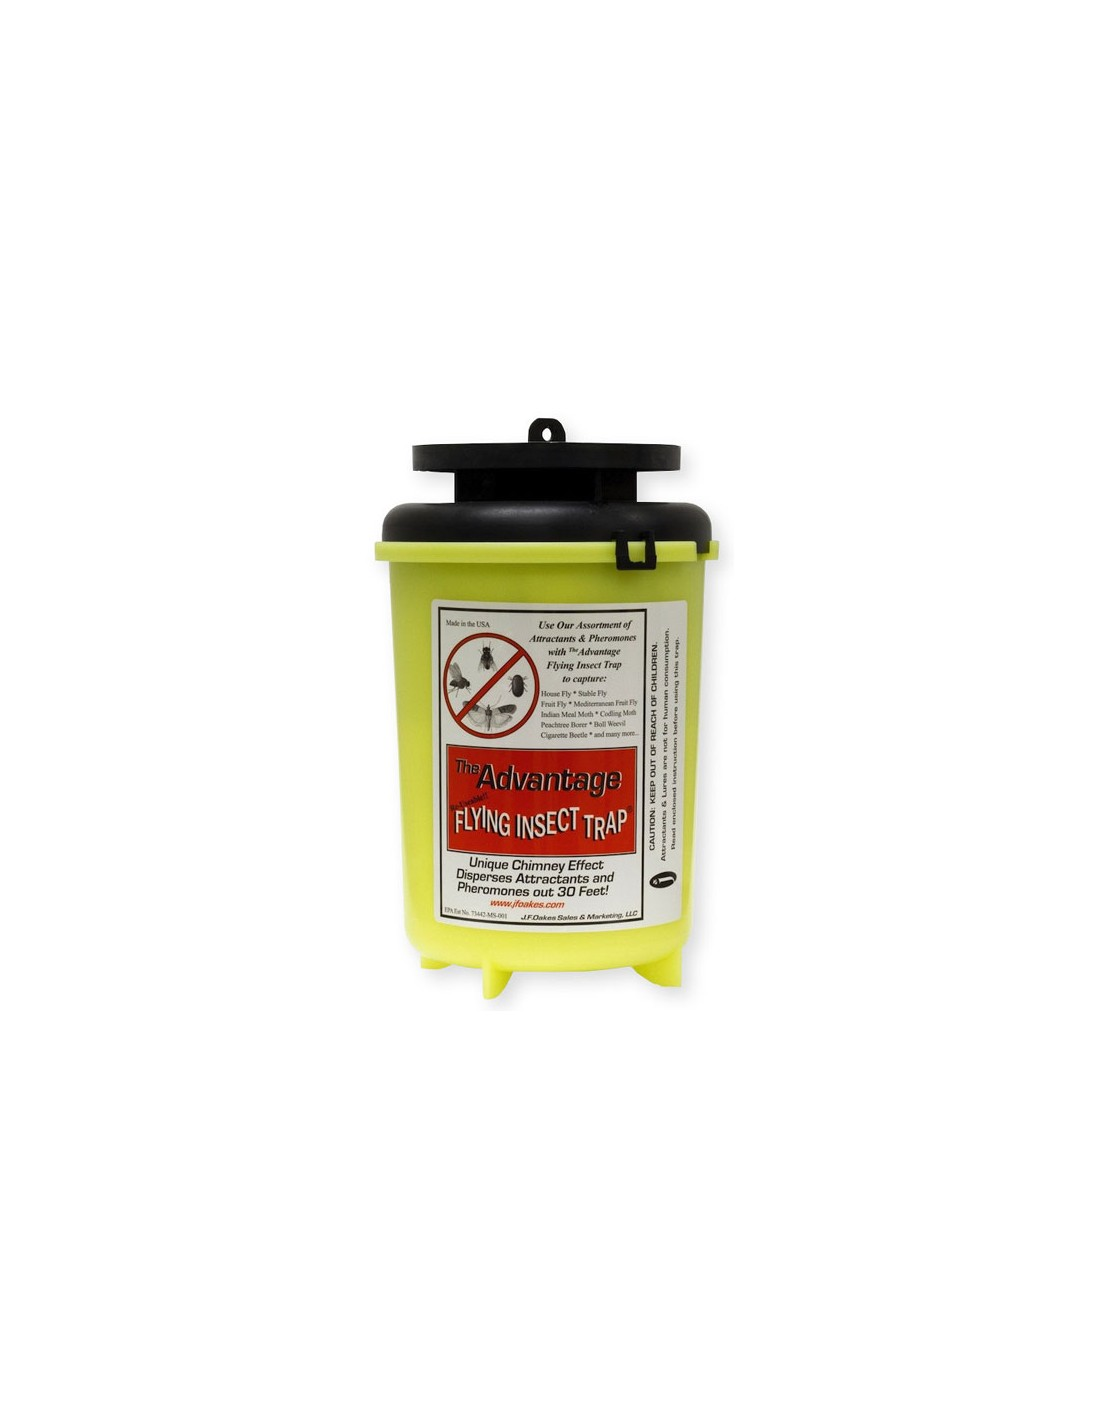 DOES THE ADVANTAGE FLYING INSECT AFFECT MOSQUITOES?